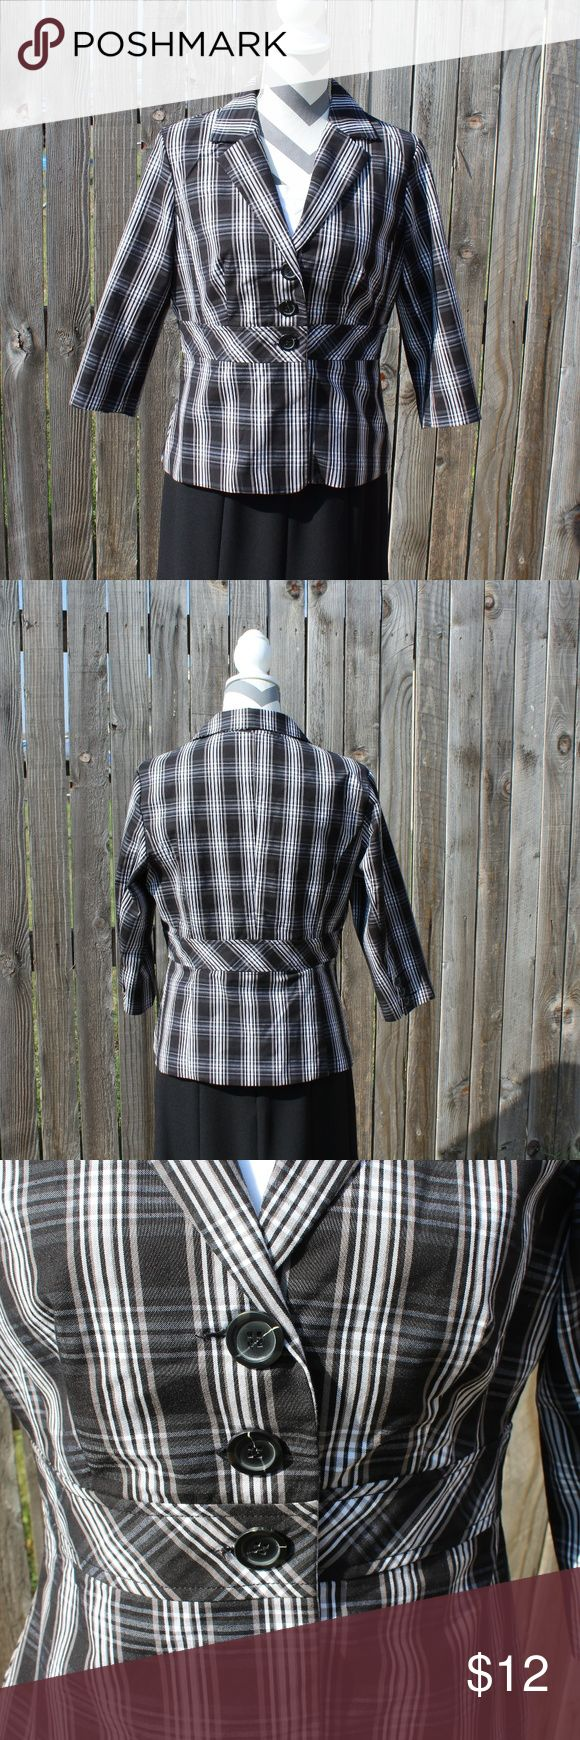 $ 4/20 Black & White 3/4 sleeves Med Cato Blazer SALE! Bundle this item with any 3 other items marked with an $ and only offer $20.  Black and white 3/4 sleeve blazer with 3 button front.  Material is light weight and has some stretch to it. Looks great with a pair of slacks or jeans. In fantastic condition.  Measurements: Length: 24 1/2 inches Pit to pit: 21 inches Waist: 16 1/2 inches Sleeve: 17 1/4 inches Cato Jackets & Coats Blazers